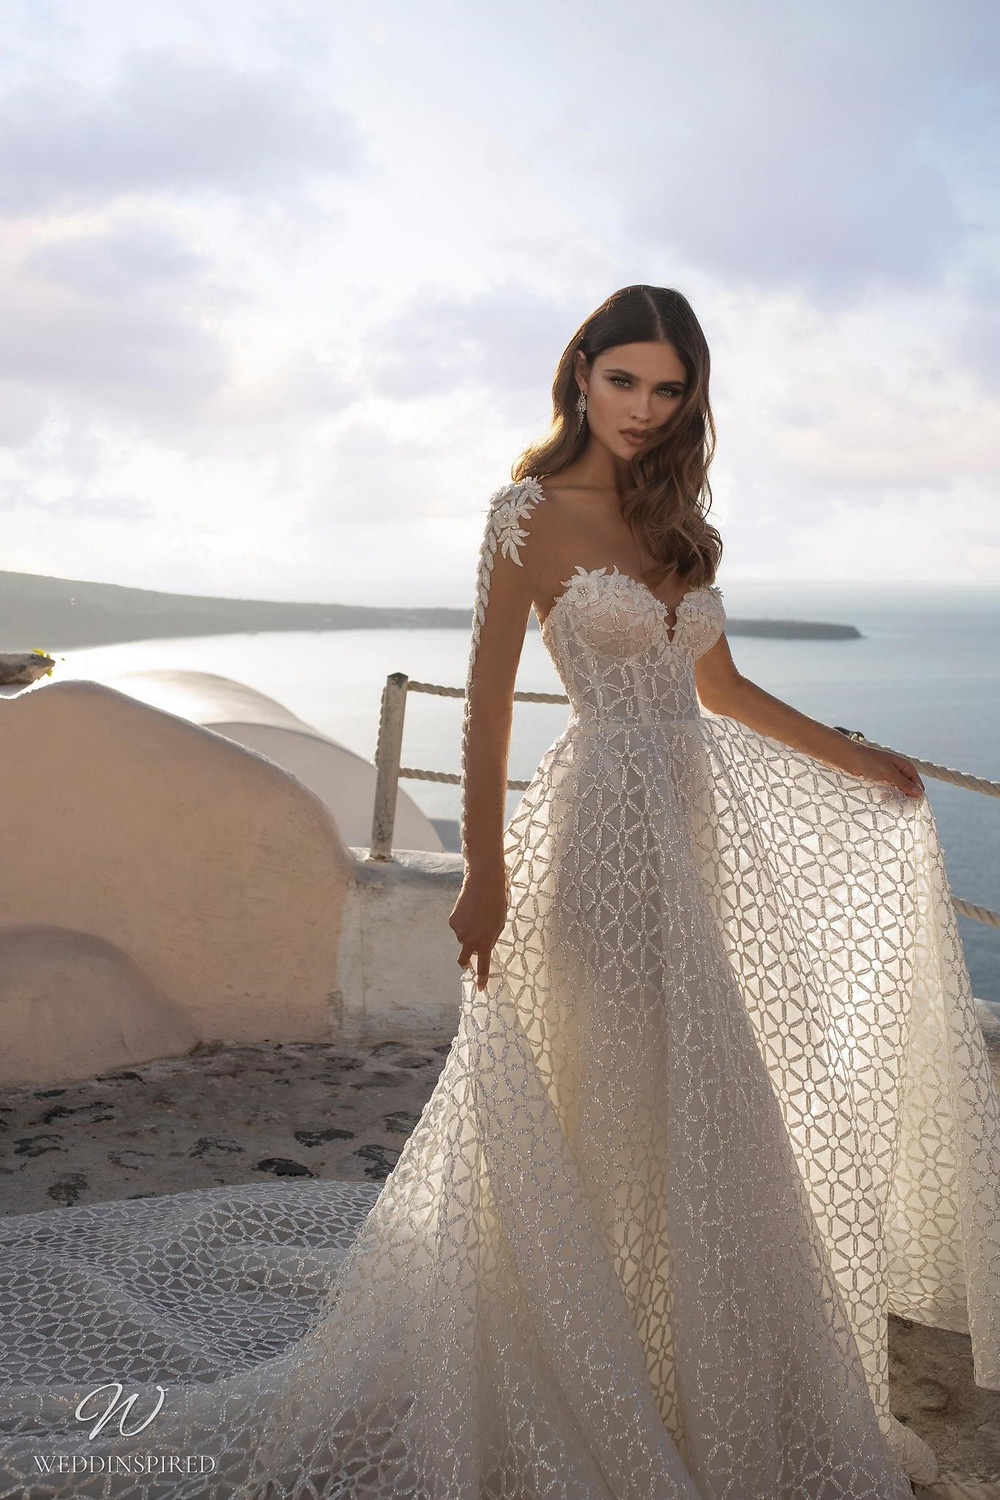 A Ricca Sposa sparkly lace A-line wedding dress with long lace illusion sleeves and a sweetheart neckline